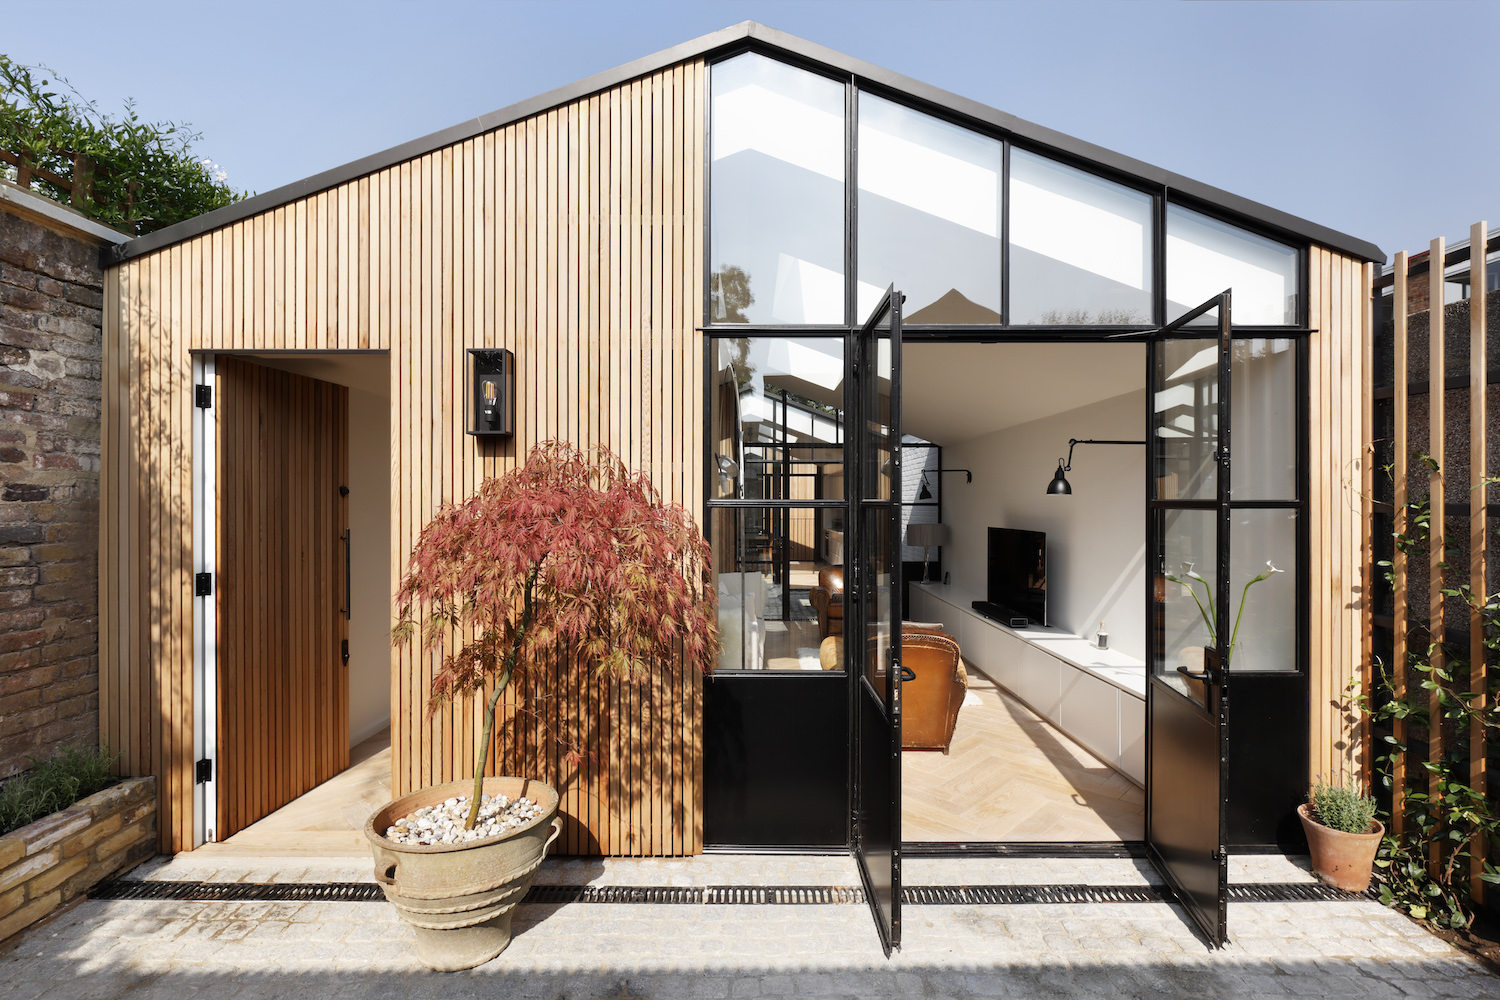 Explore A Former Timber Garage That's Now A Modern Family Home